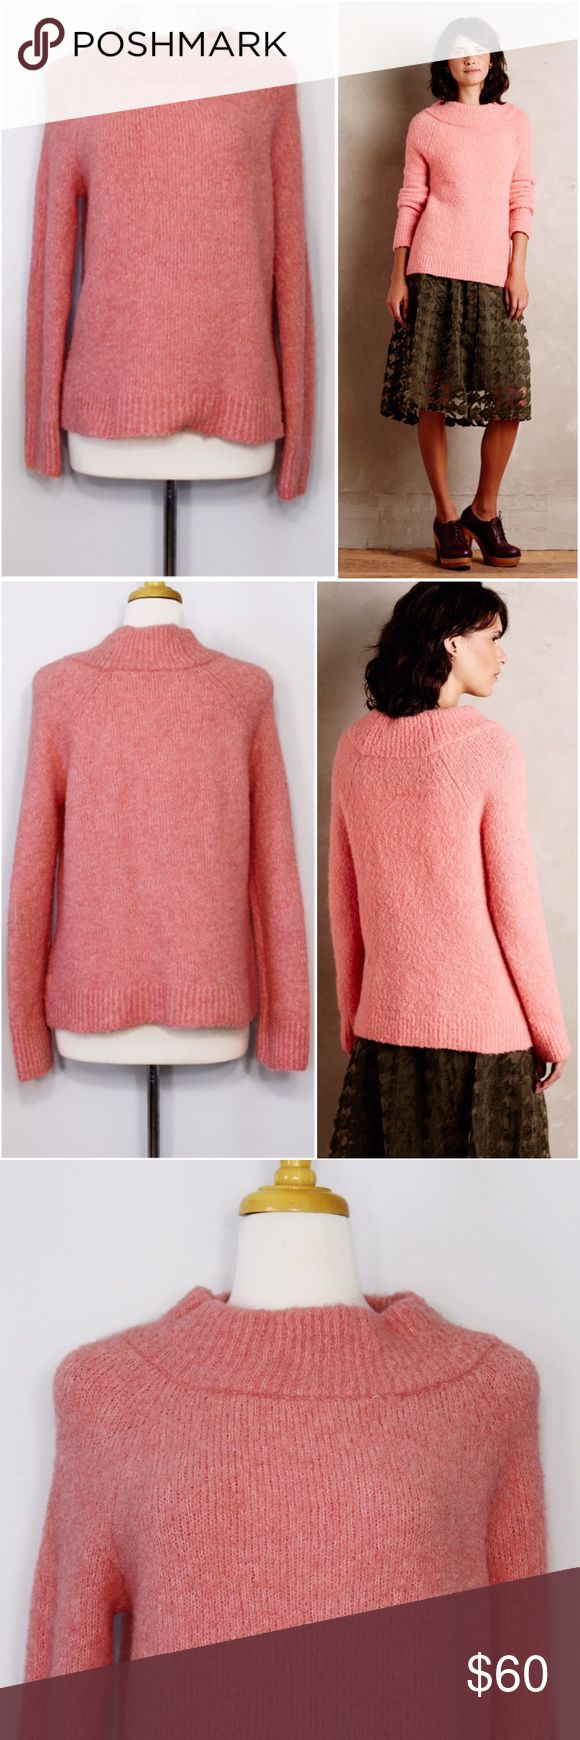 """Anthropologie (MOTH) Mock Neck Bouclé Sweater Bust: 20"""" (laying flat, stretchy back)  Length: 23"""" (shoulder to hem)   A cozy wool sweater in great condition! Pullover styling. Wide mockneck. 45% Acrylic, 28% wool, 18% polyester, 9% alpaca sweater knit. No holes or stains. Comes from a smoke free environment.  👌🏻Offers welcome through offer button 📦Bundles welcome ❌NO trades, please. ⚡️Same/Next day shipping Anthropologie Sweaters"""